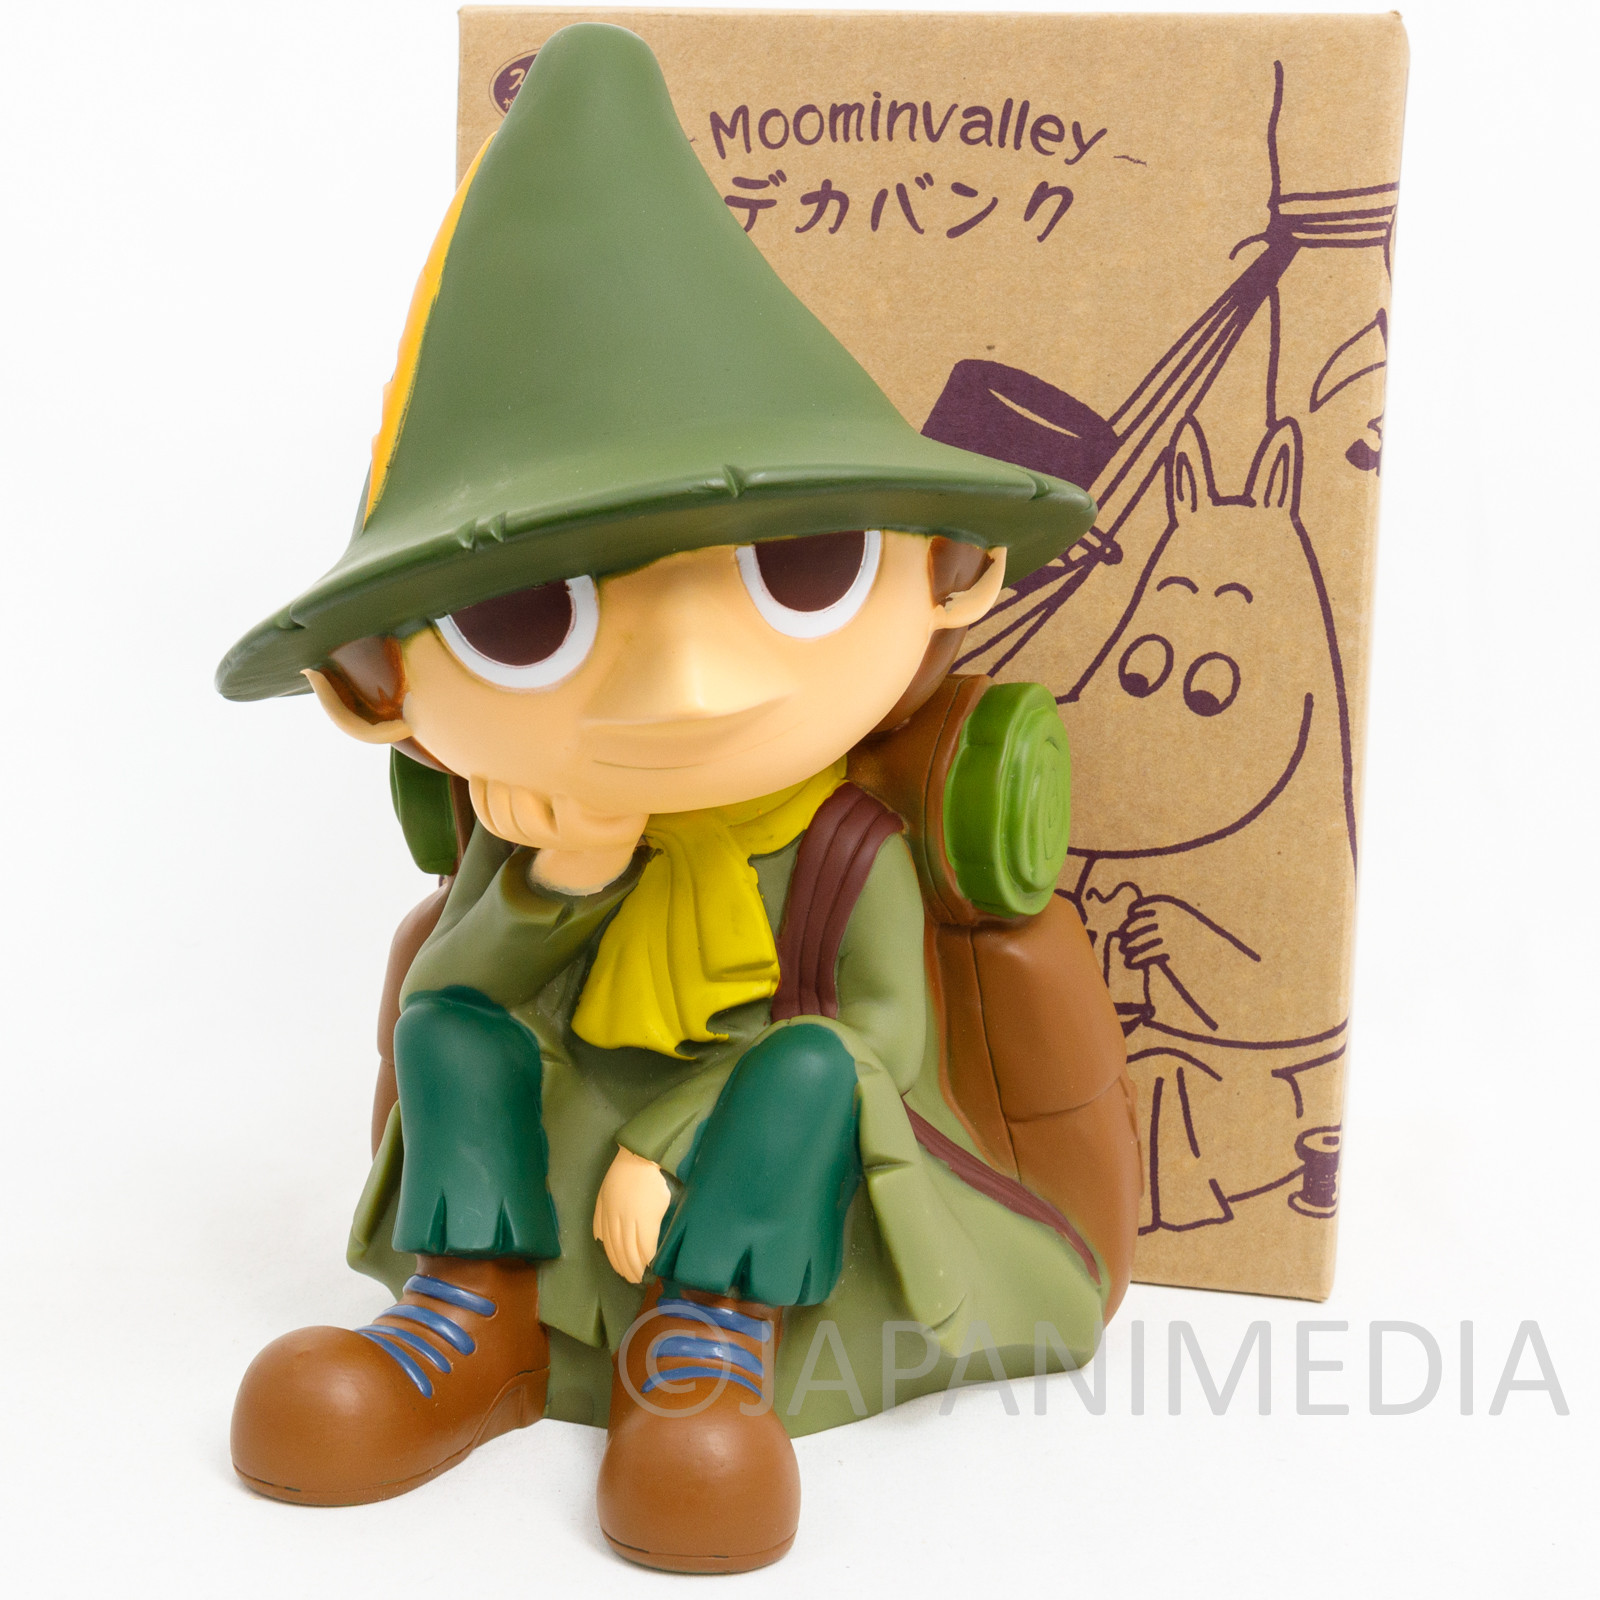 "Moomin Valley Snafkin 9"" Soft Vinyl Figure Coin Bank JAPAN ANIME"